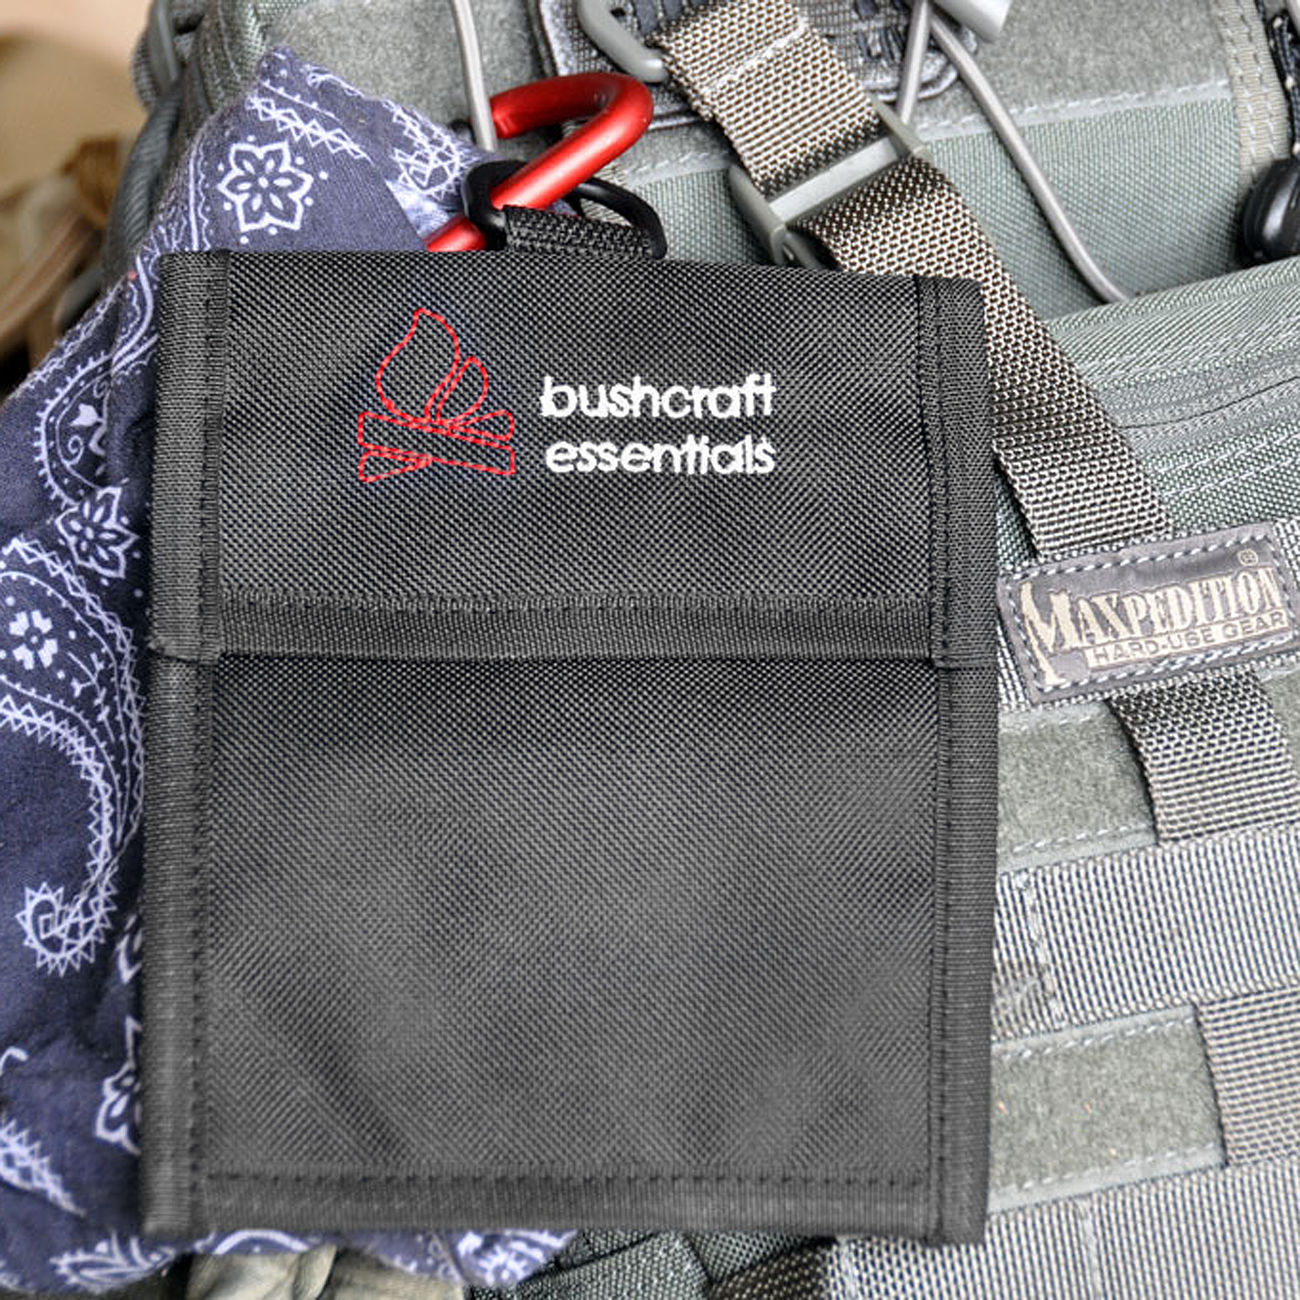 Bushcraft Essentials Outdoor-Tasche für Bushbox TI UL 3